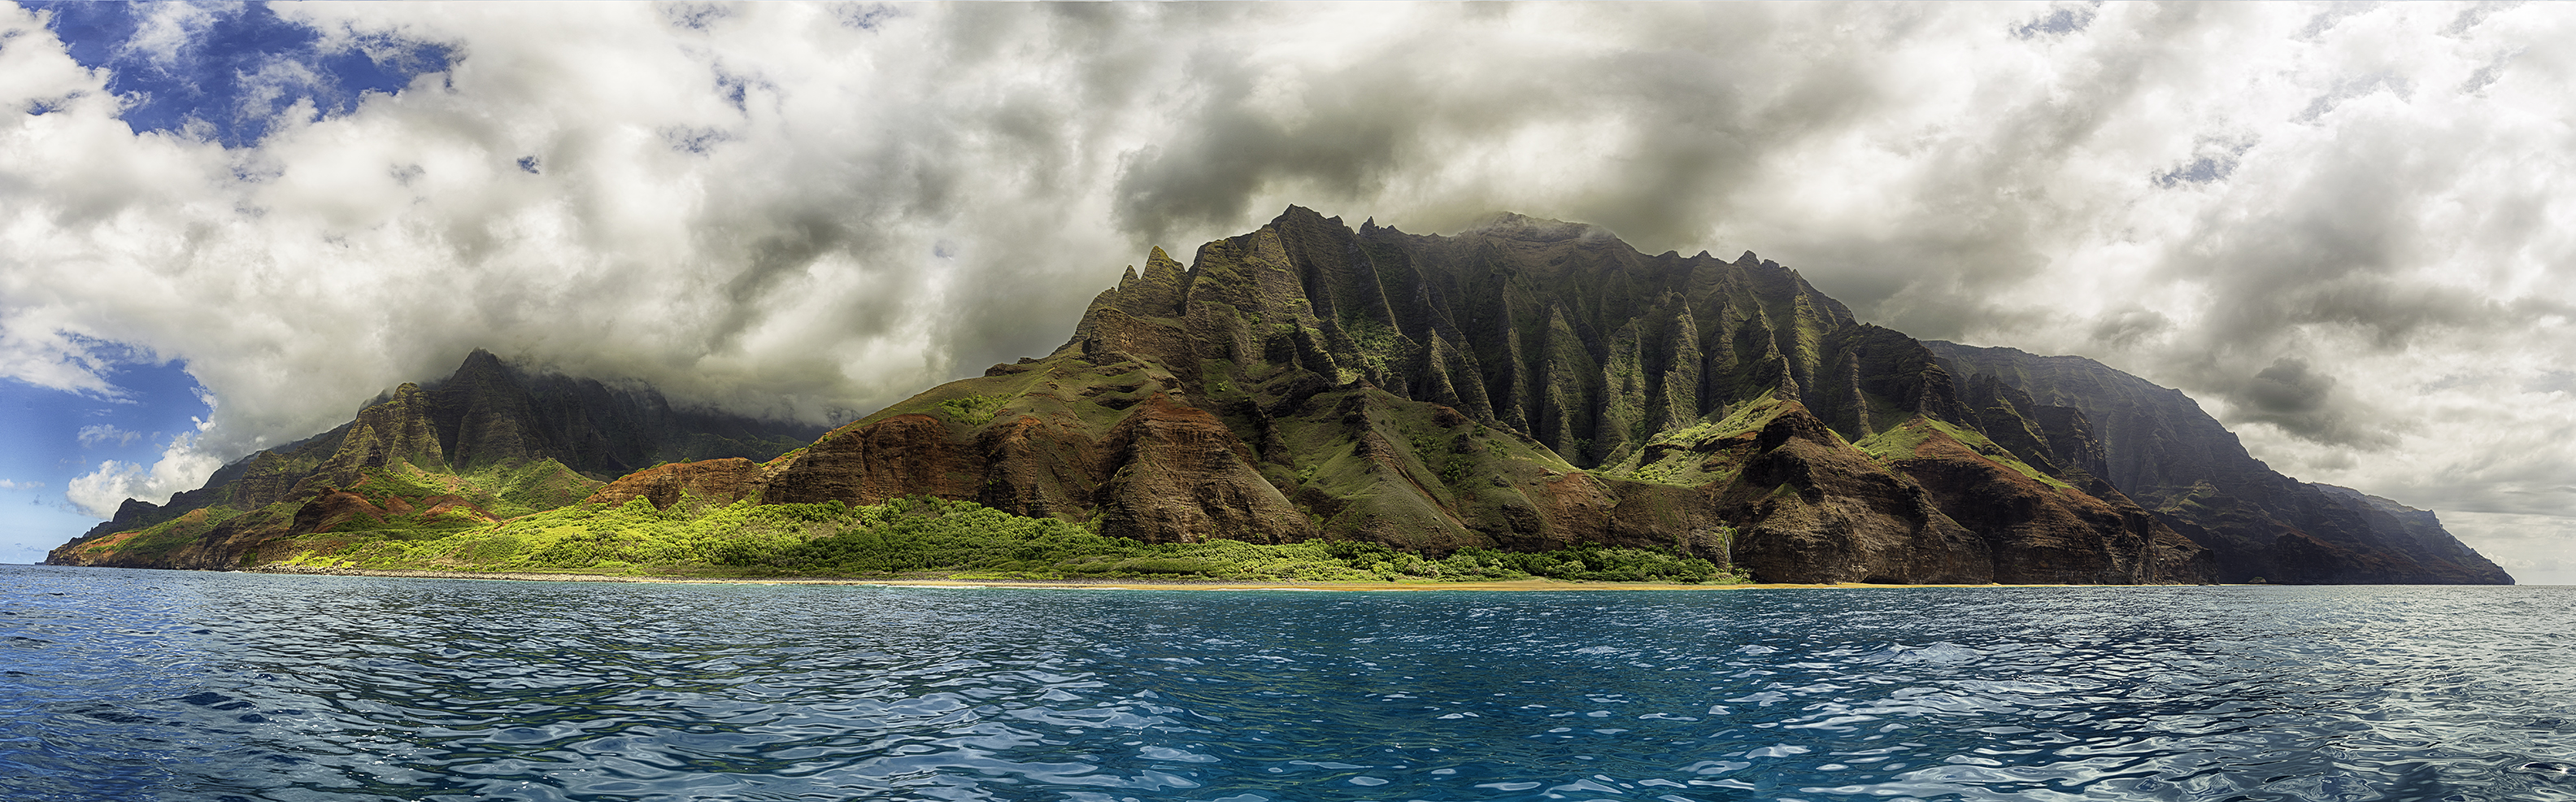 Kauai Photography, NaPali Coast